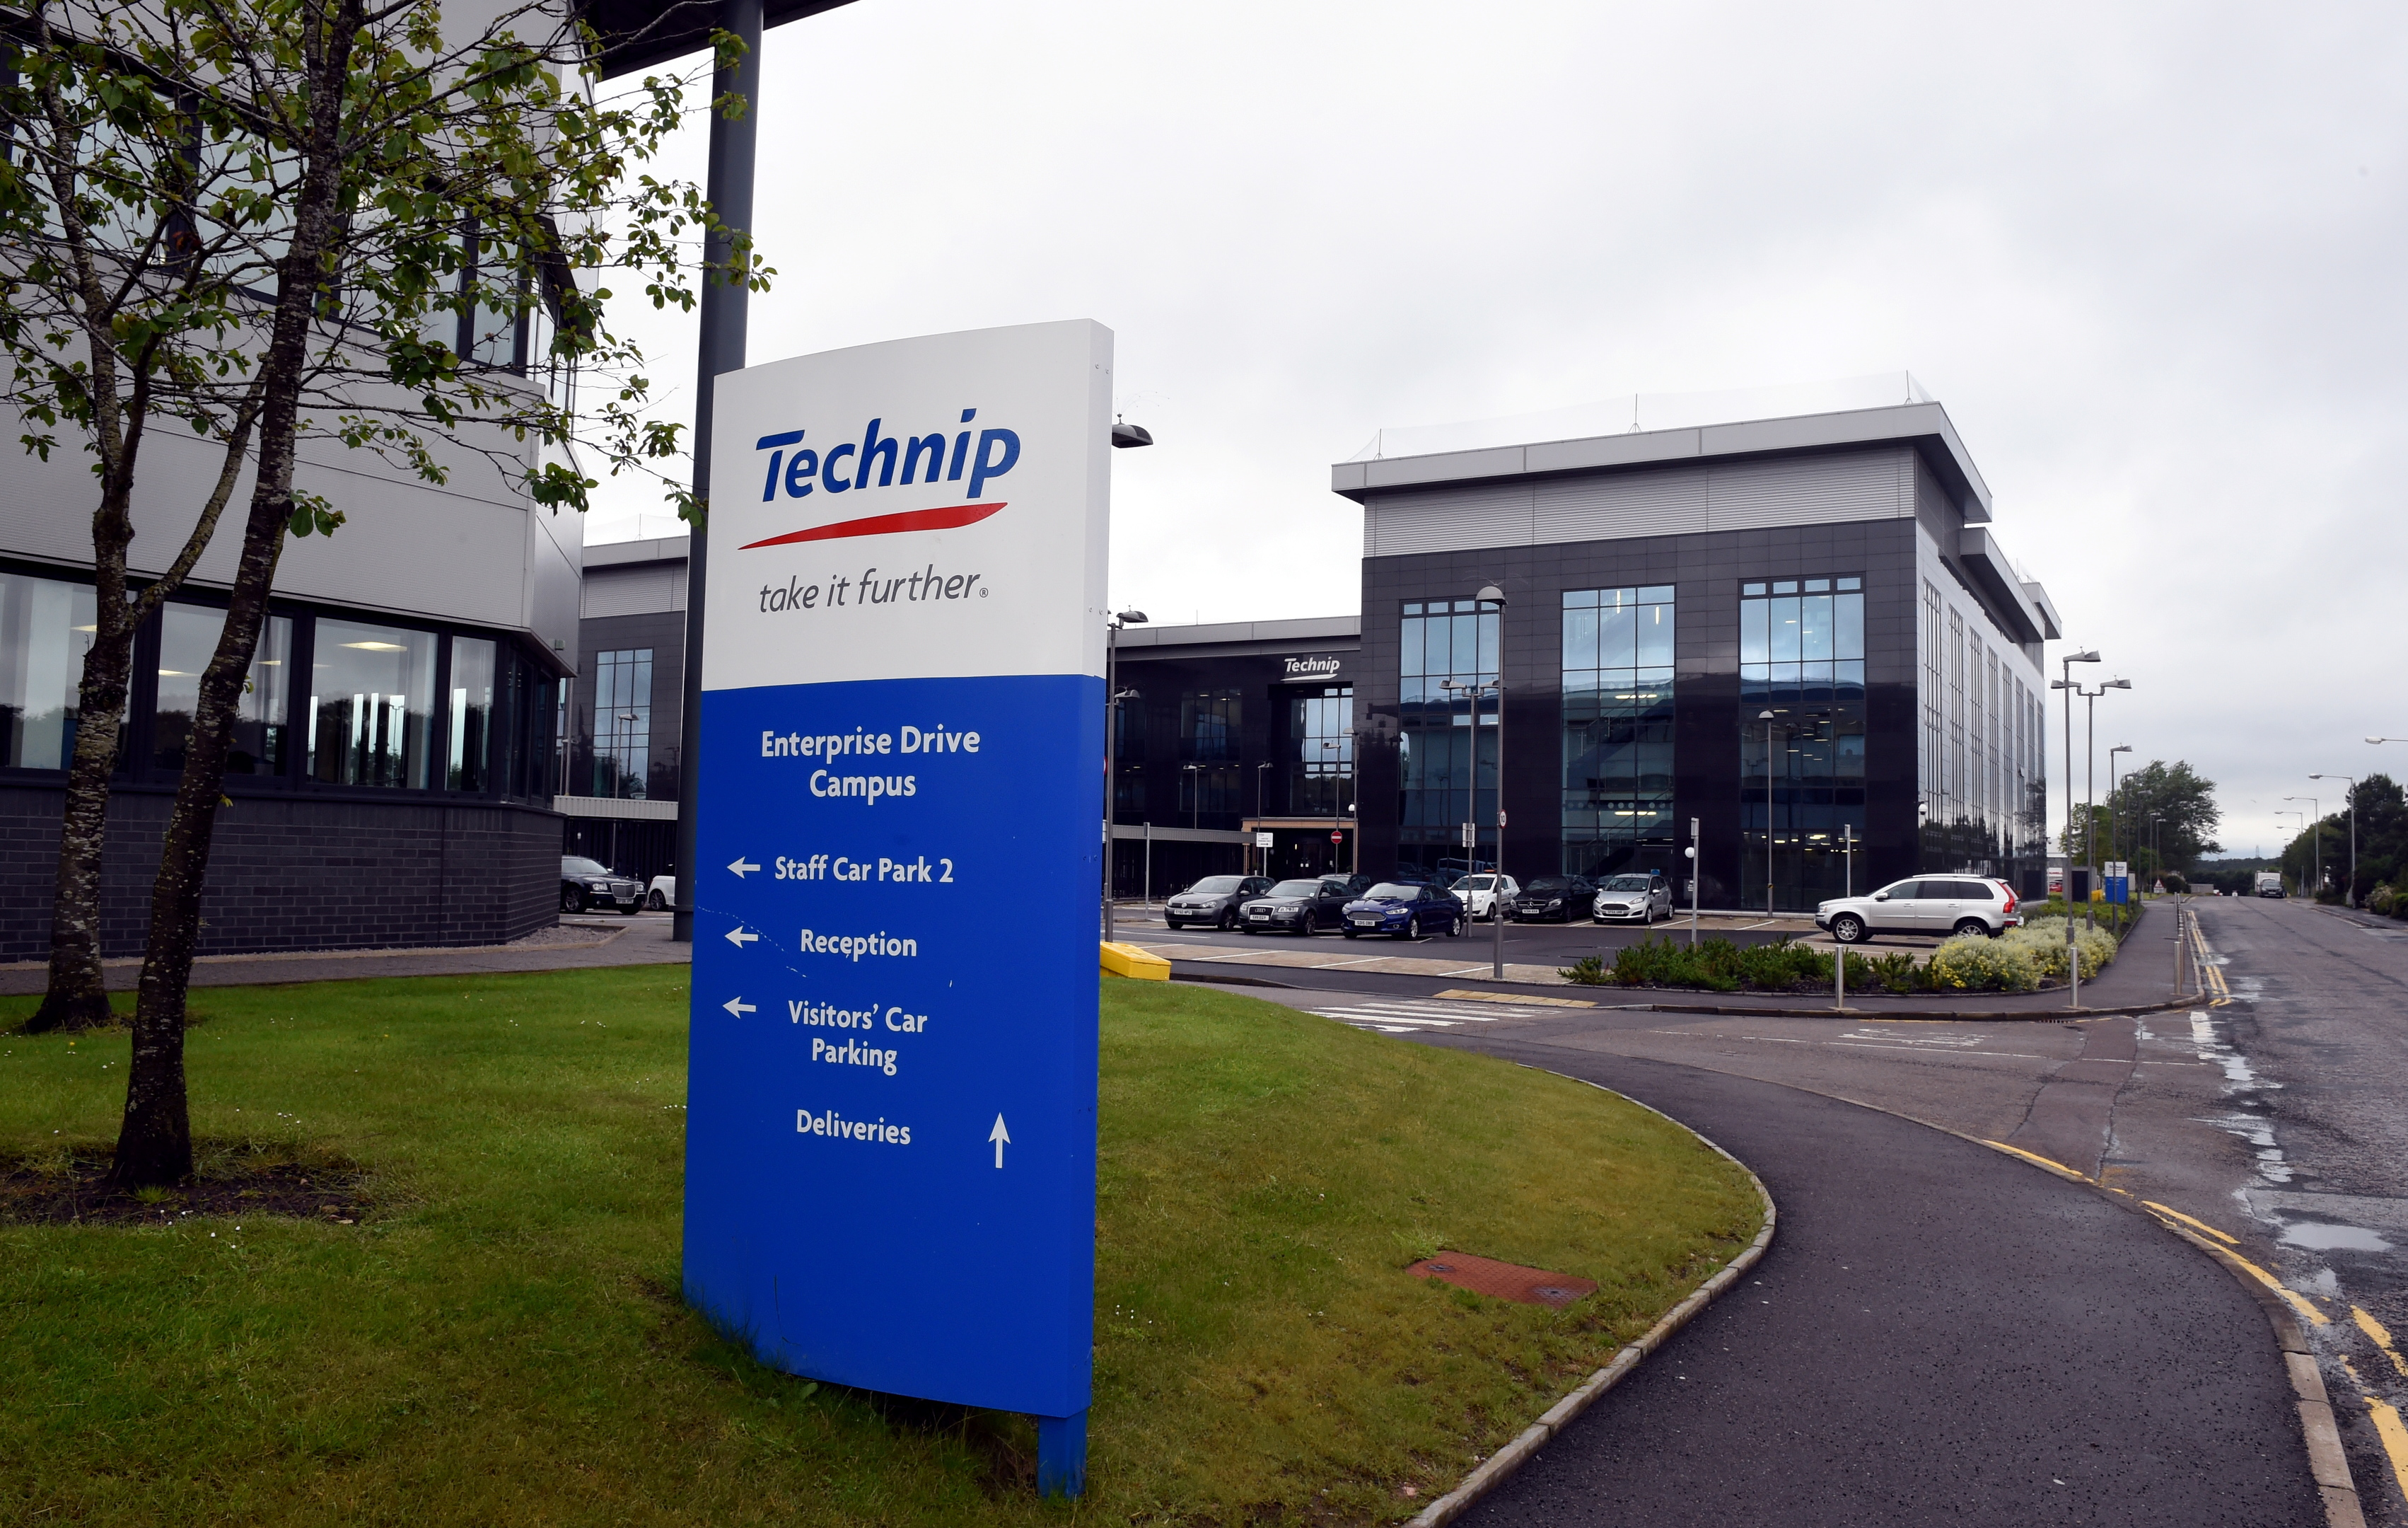 Technip's offices at Enterprise Drive, Westhill.